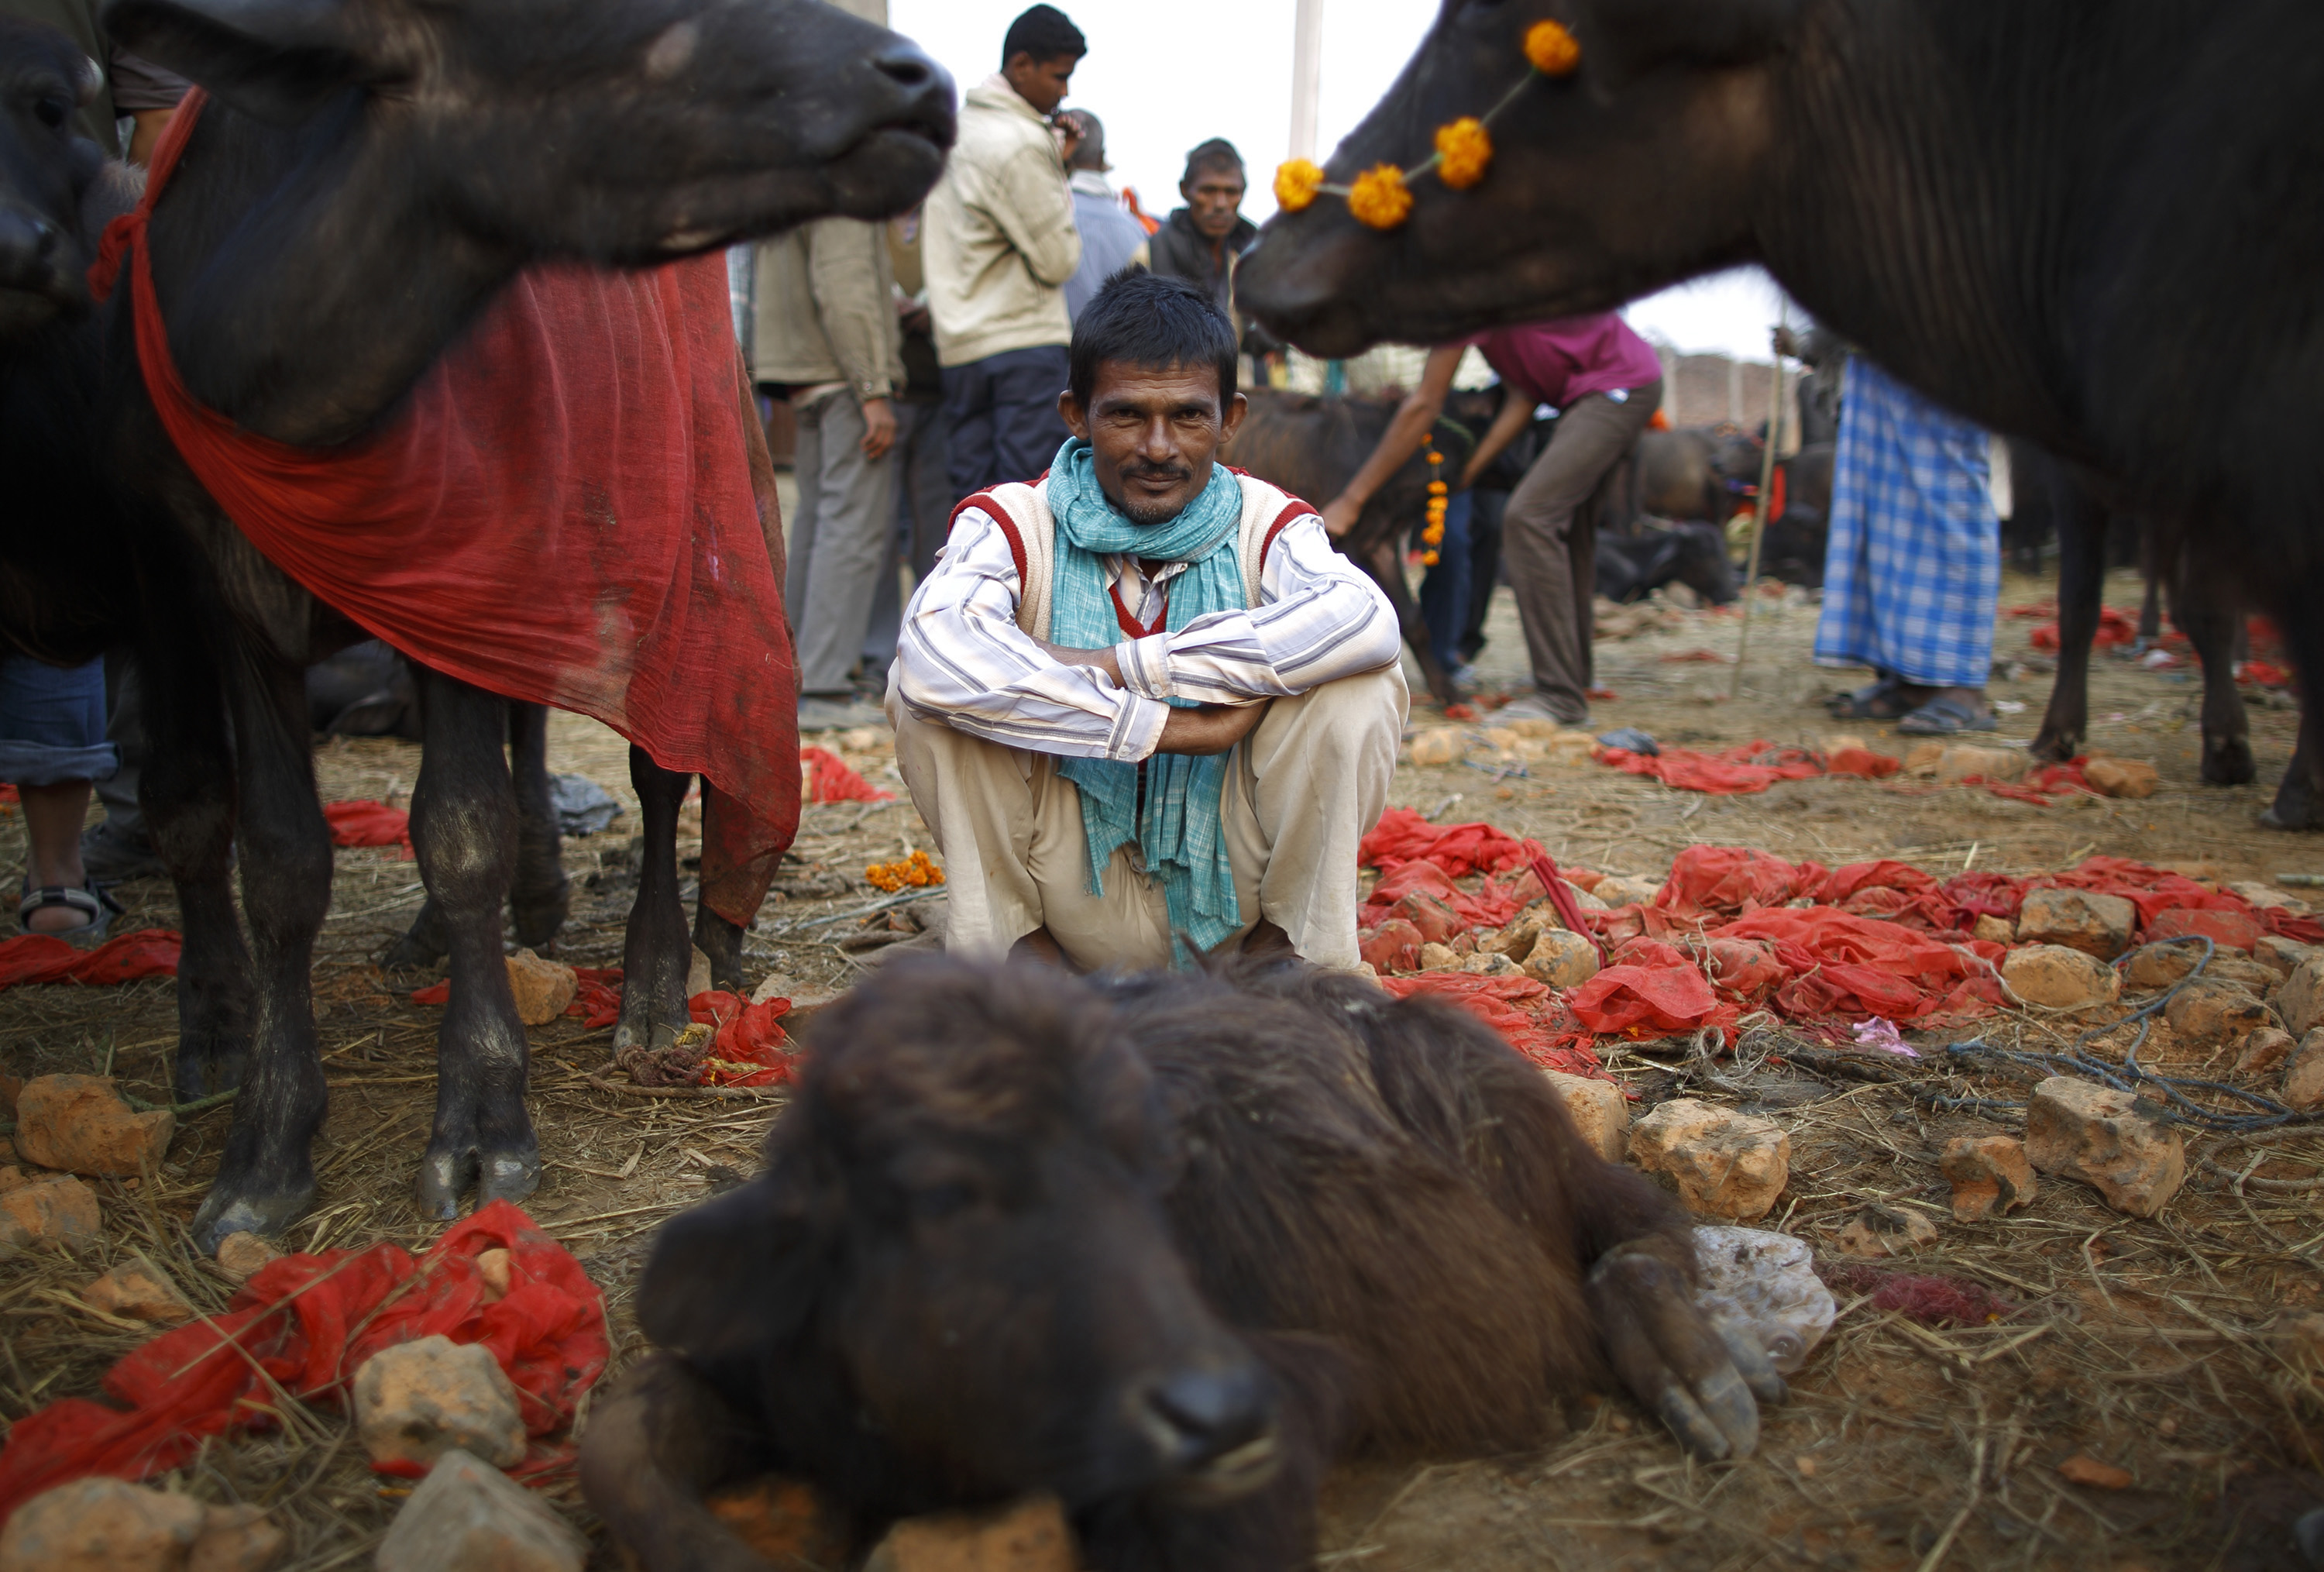 A herder sits inside an enclosure for buffalos awaiting sacrifice on the eve of the sacrificial ceremony for the  Gadhimai Mela  festival in Bariyapur Nov. 27, 2014